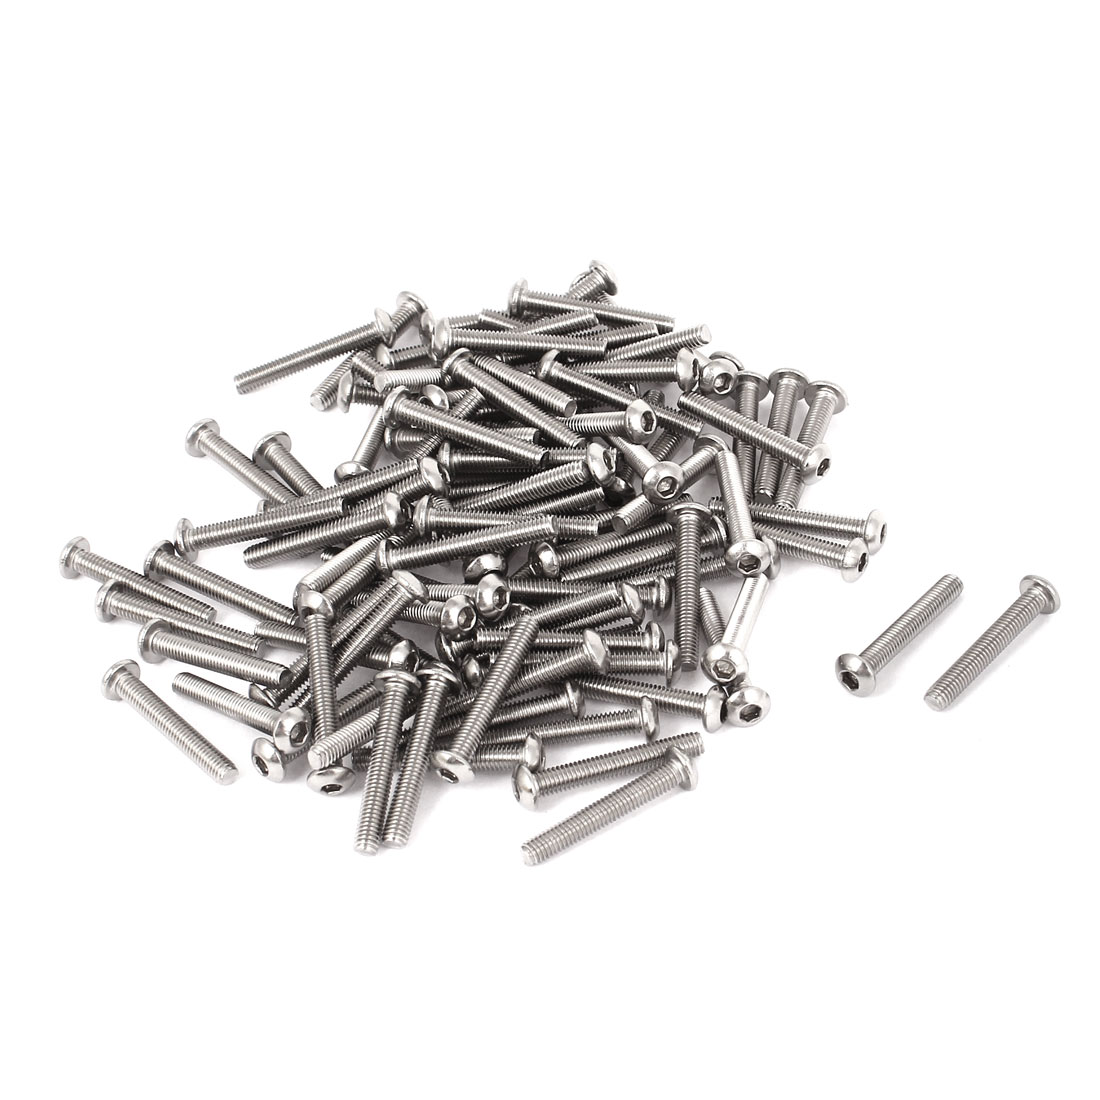 100 Pcs M3x20mm Stainless Steel Button Head Hex Socket Bolts Screws 0.5mm Pitch